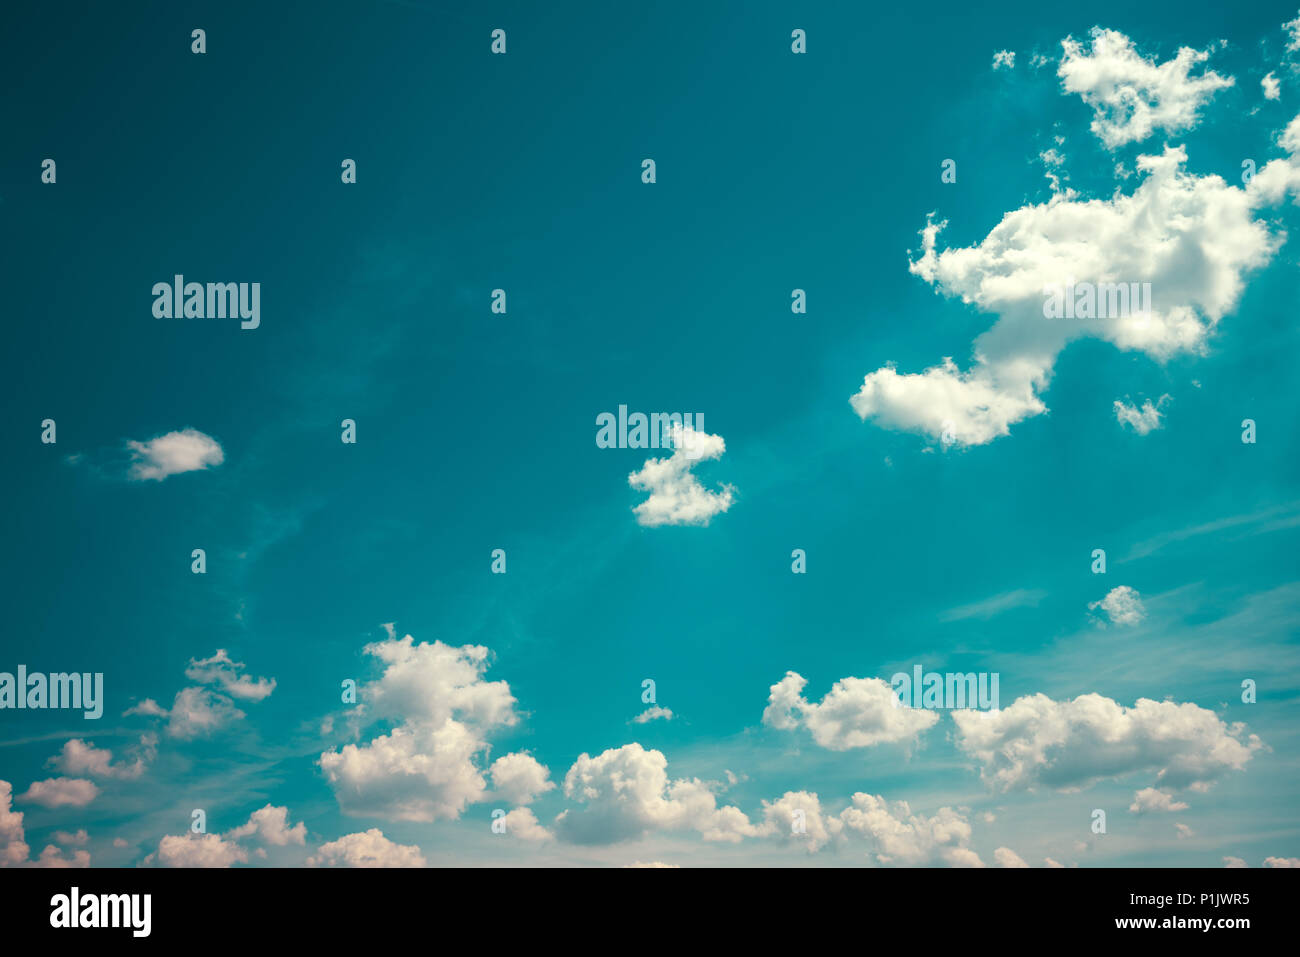 Perfect blue sky with white fluffy clouds on a sunny day. Beautiful scenic natural summertime background. - Stock Image